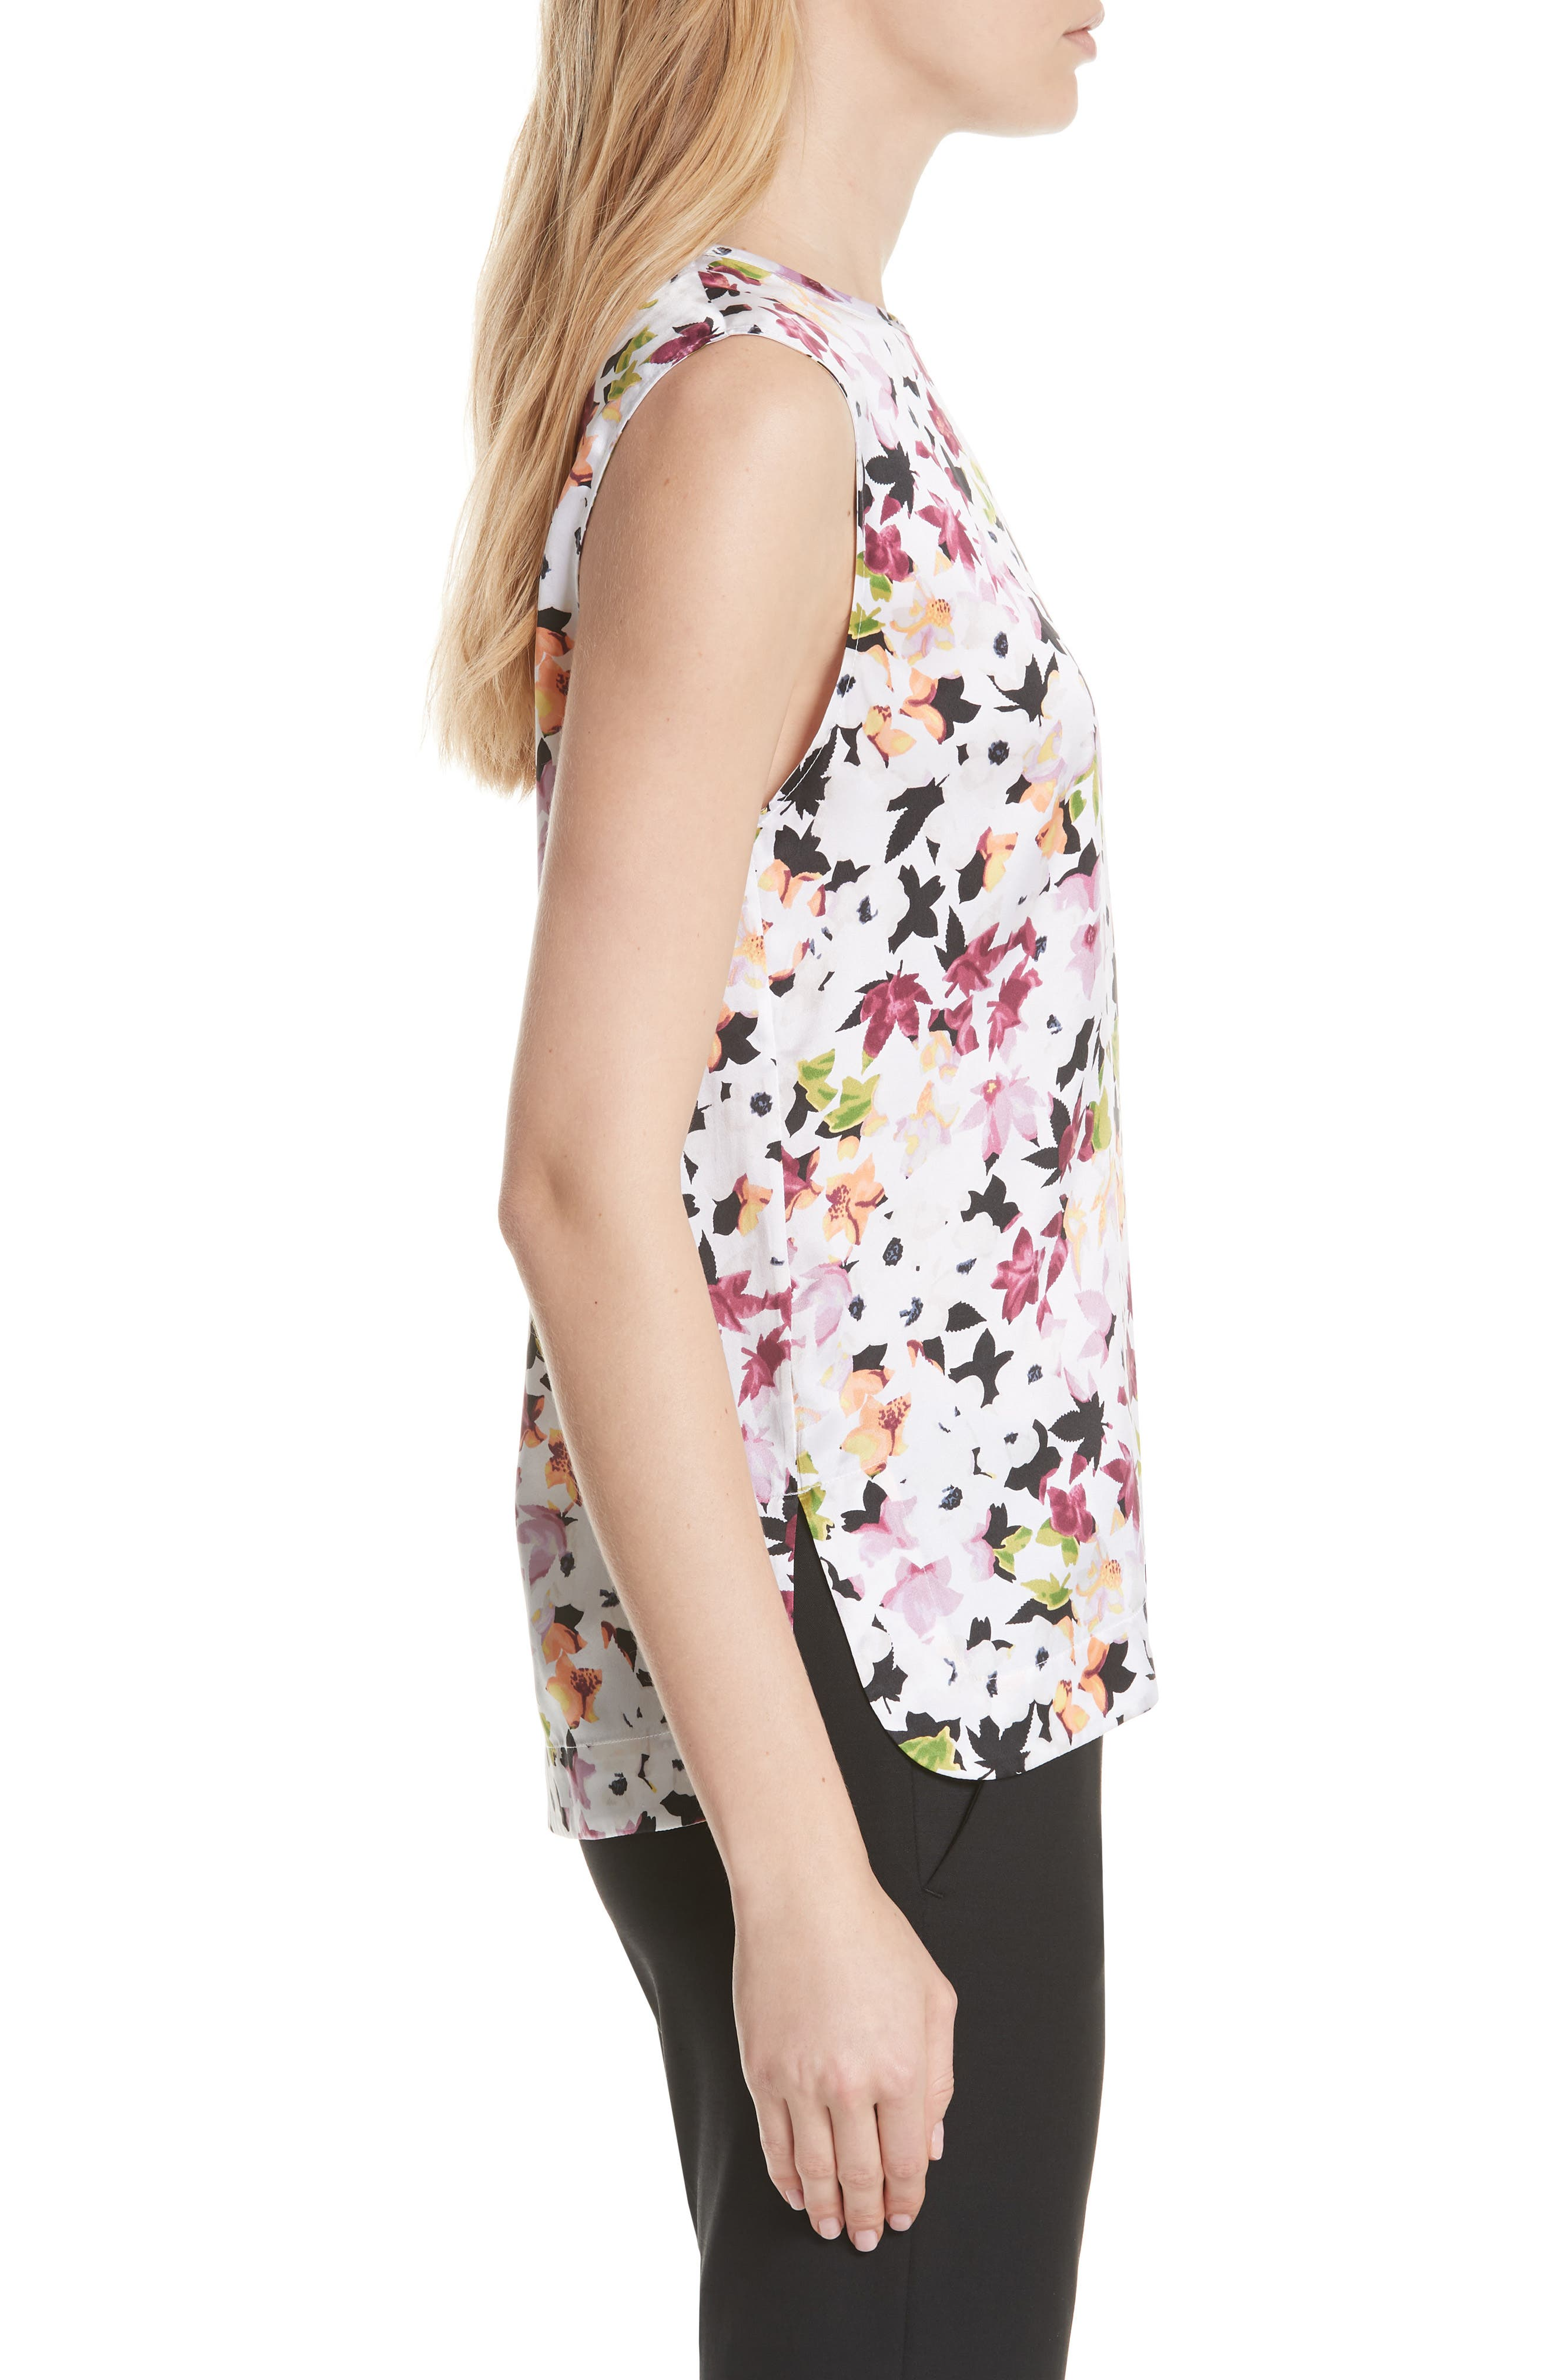 Layla Floral Silk Top,                             Alternate thumbnail 3, color,                             Bright White Multi